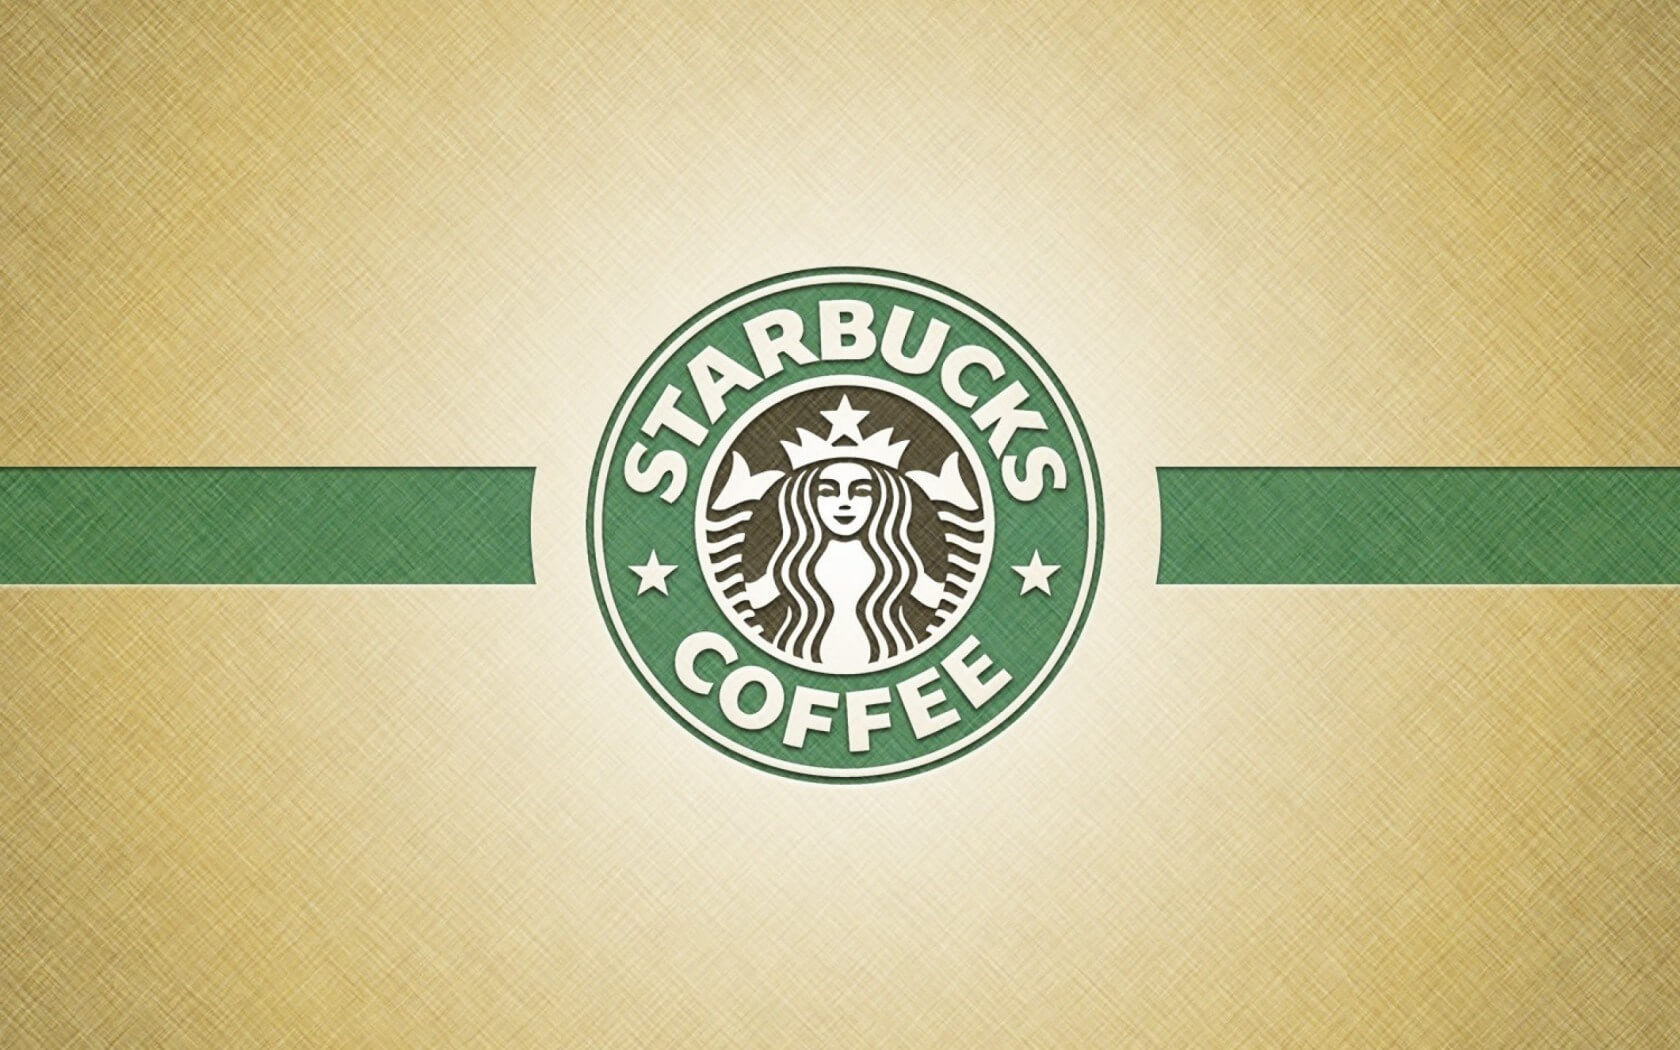 Starbucks Ppt Background - Powerpoint Backgrounds For Free In Starbucks Powerpoint Template